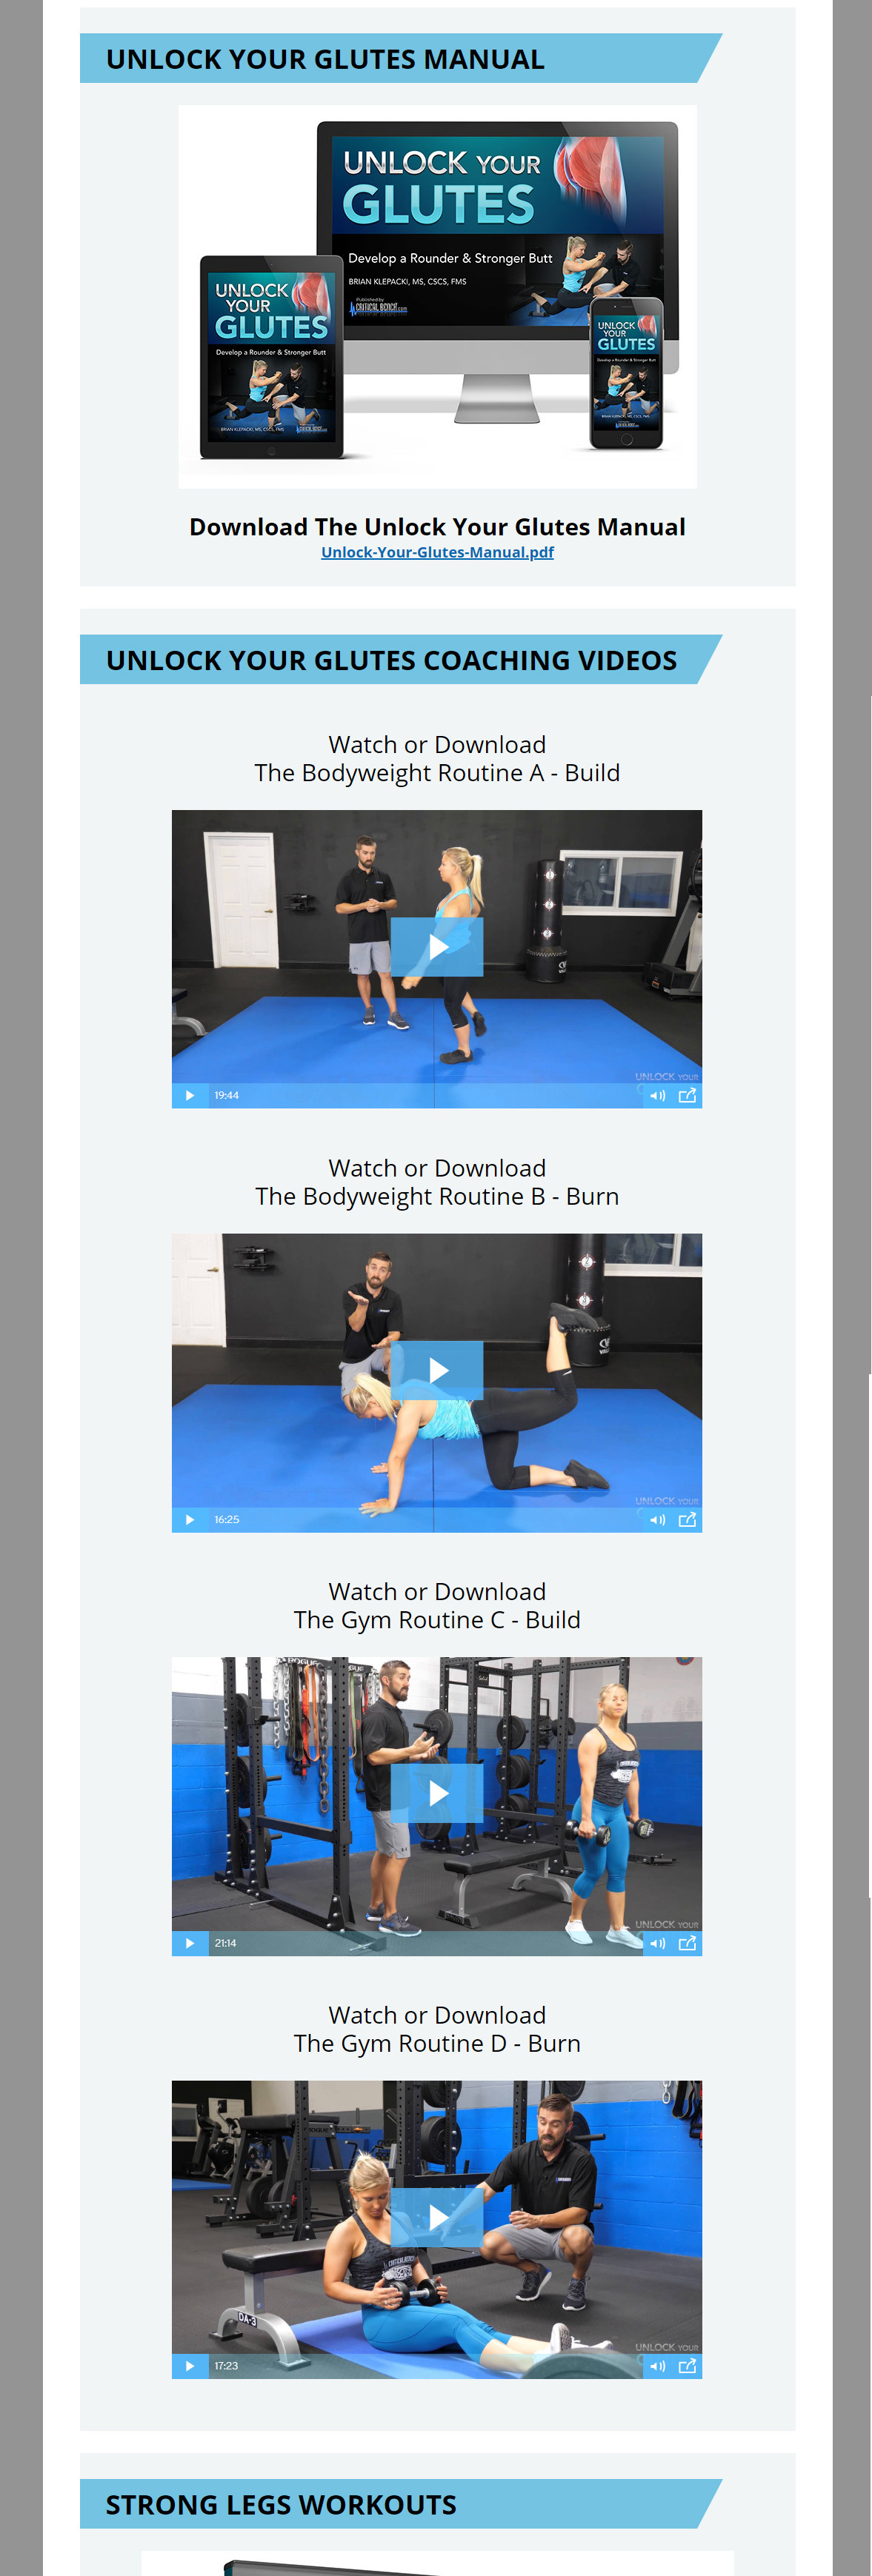 Unlock Your Glutes Download Page